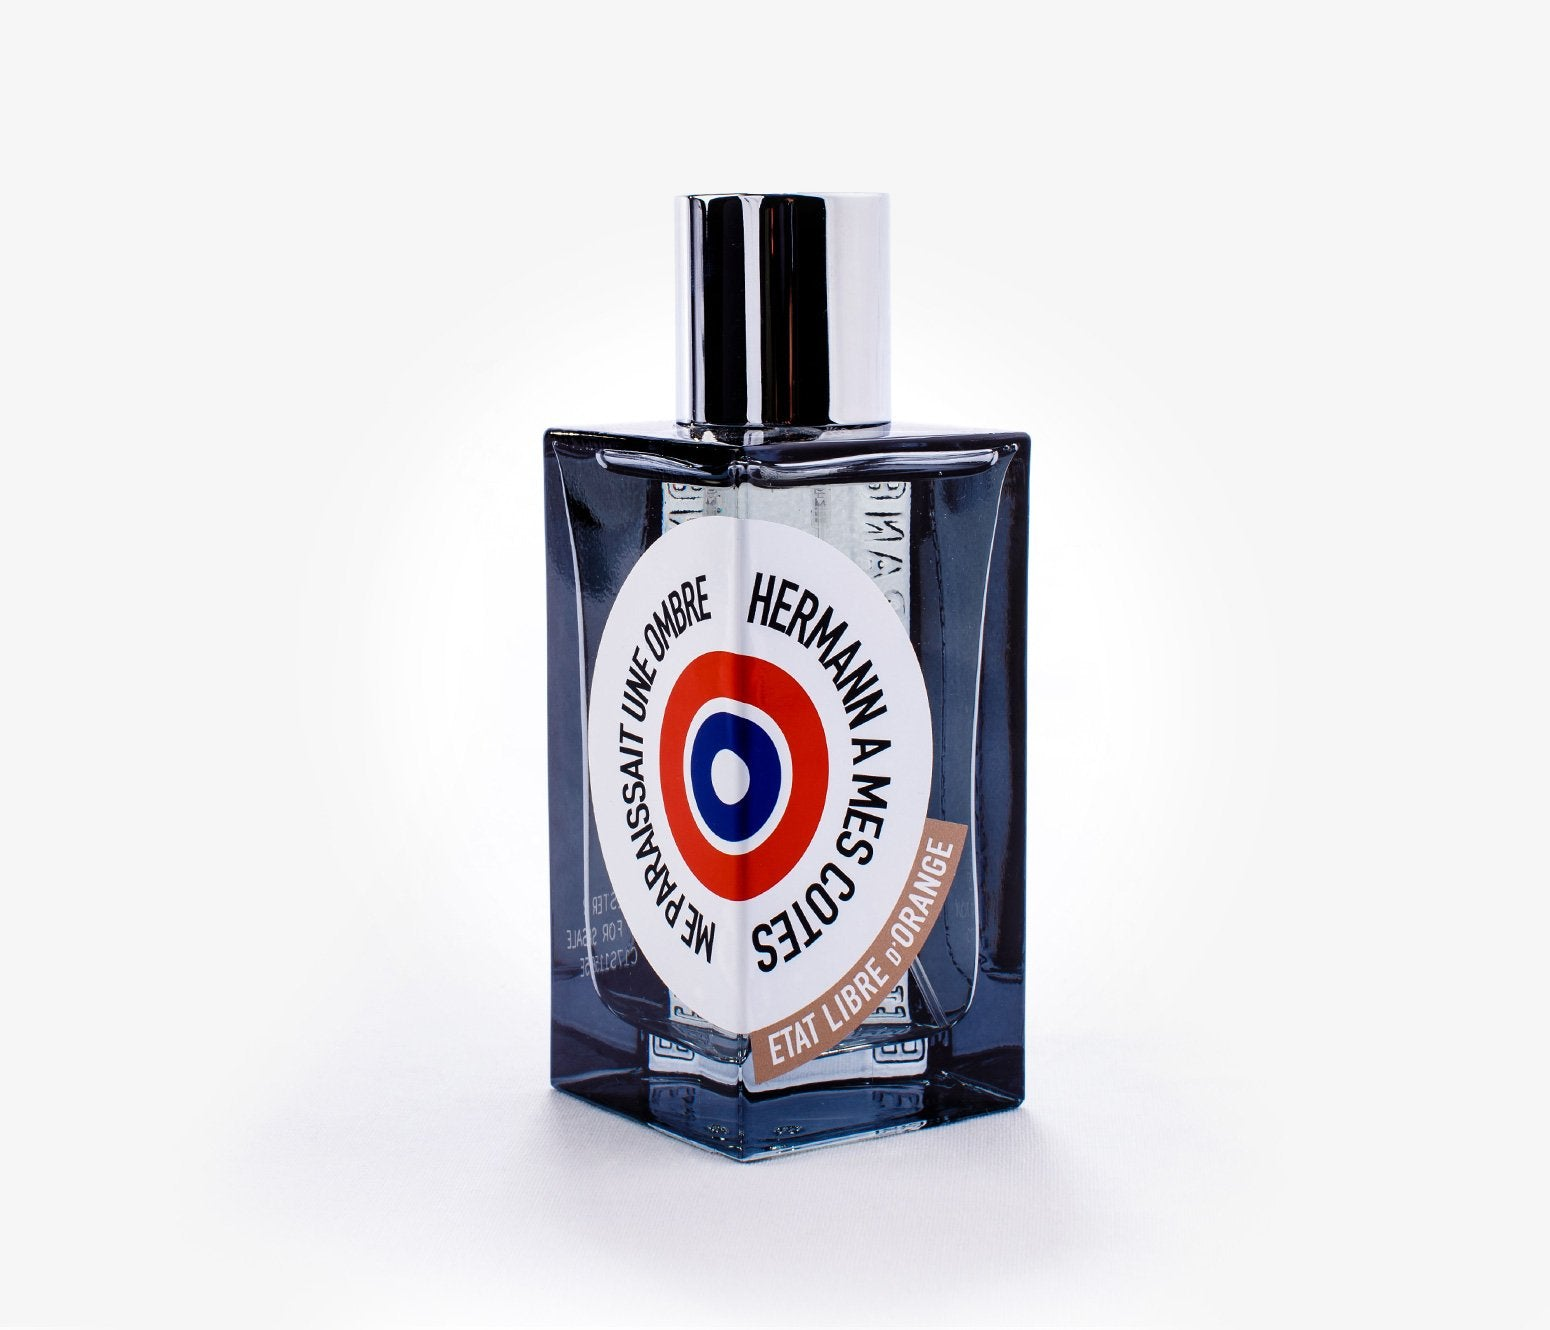 Etat Libre d'Orange - Hermann A Me Cotes - 100ml - WJU001 - Product Image - Fragrance - Les Senteurs